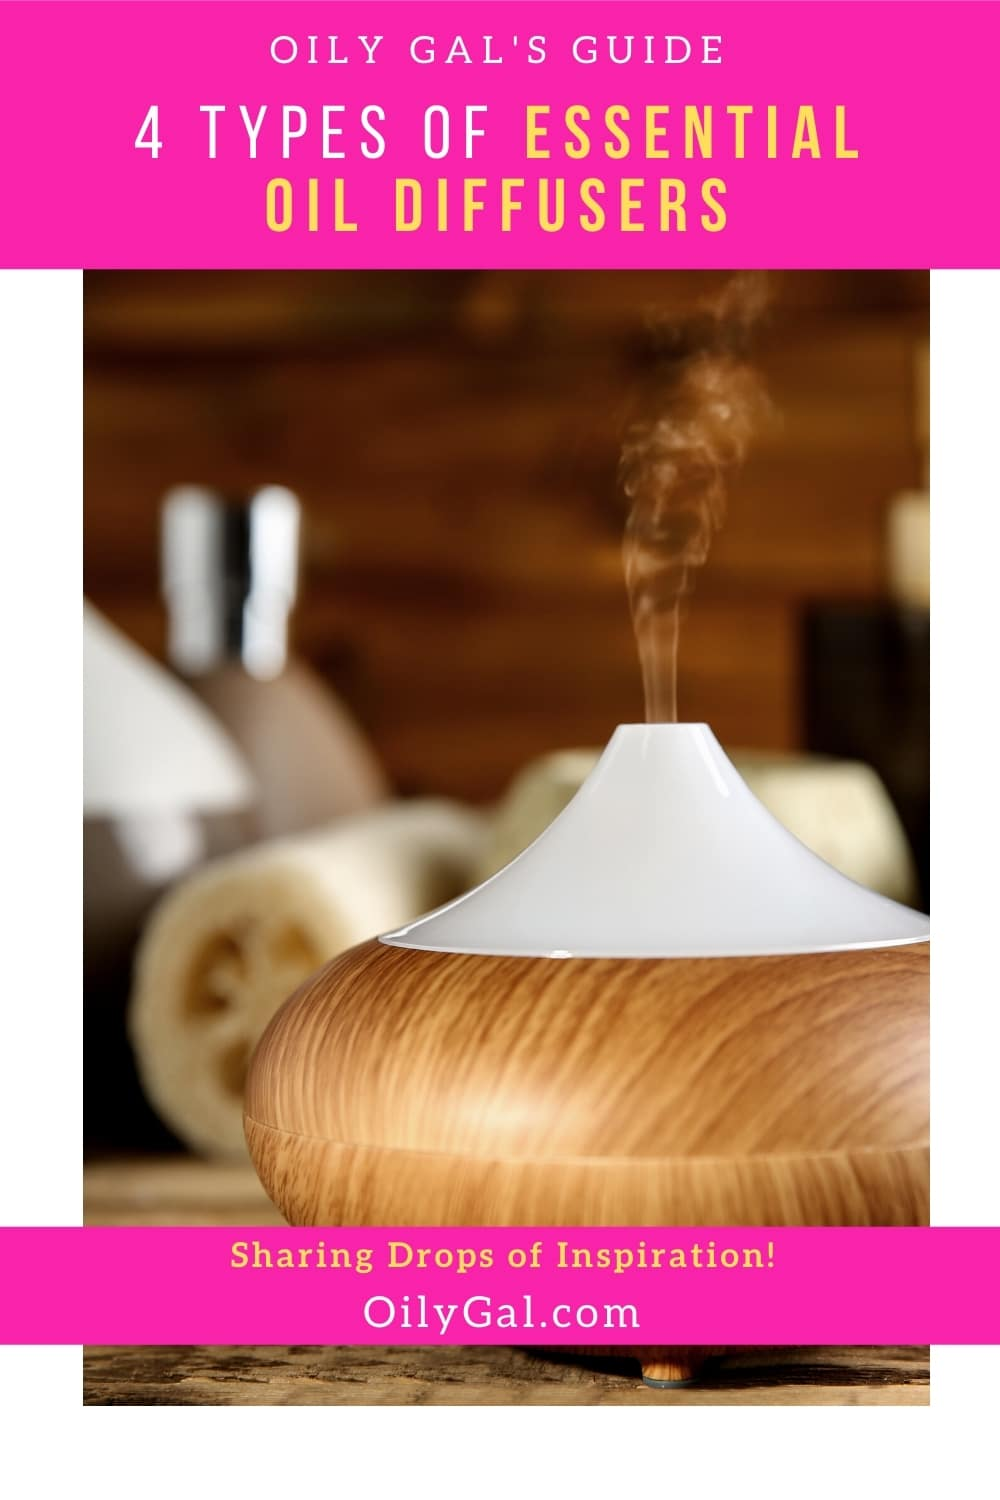 4 Types of Essential Oil Diffusers